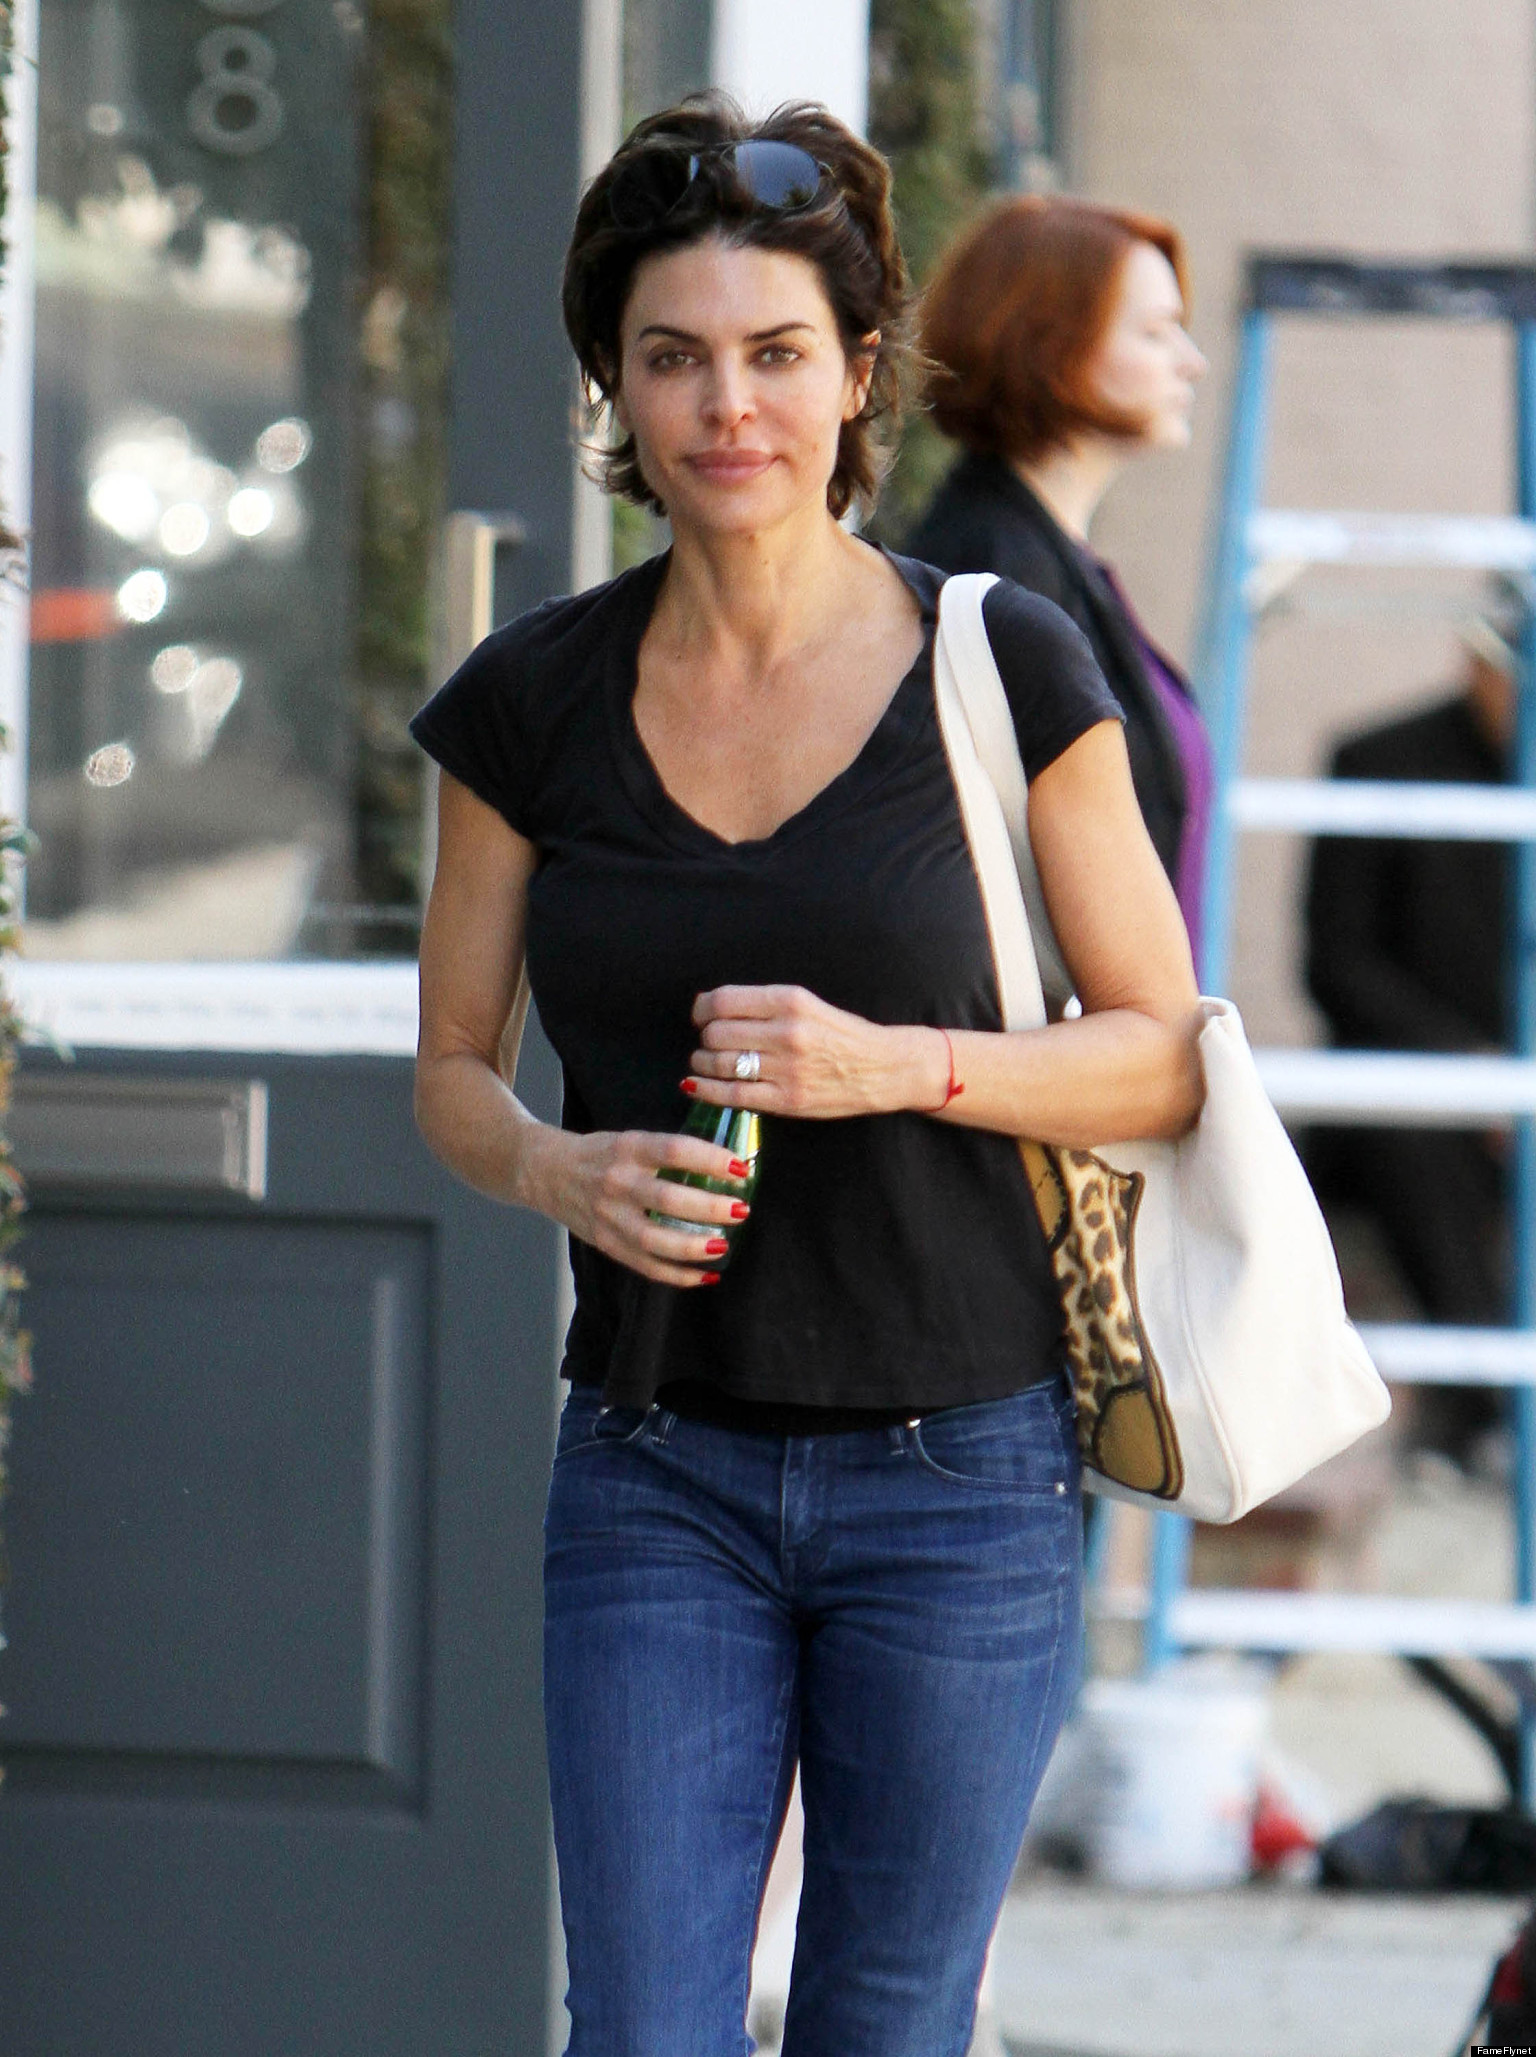 Lisa Rinna No Makeup